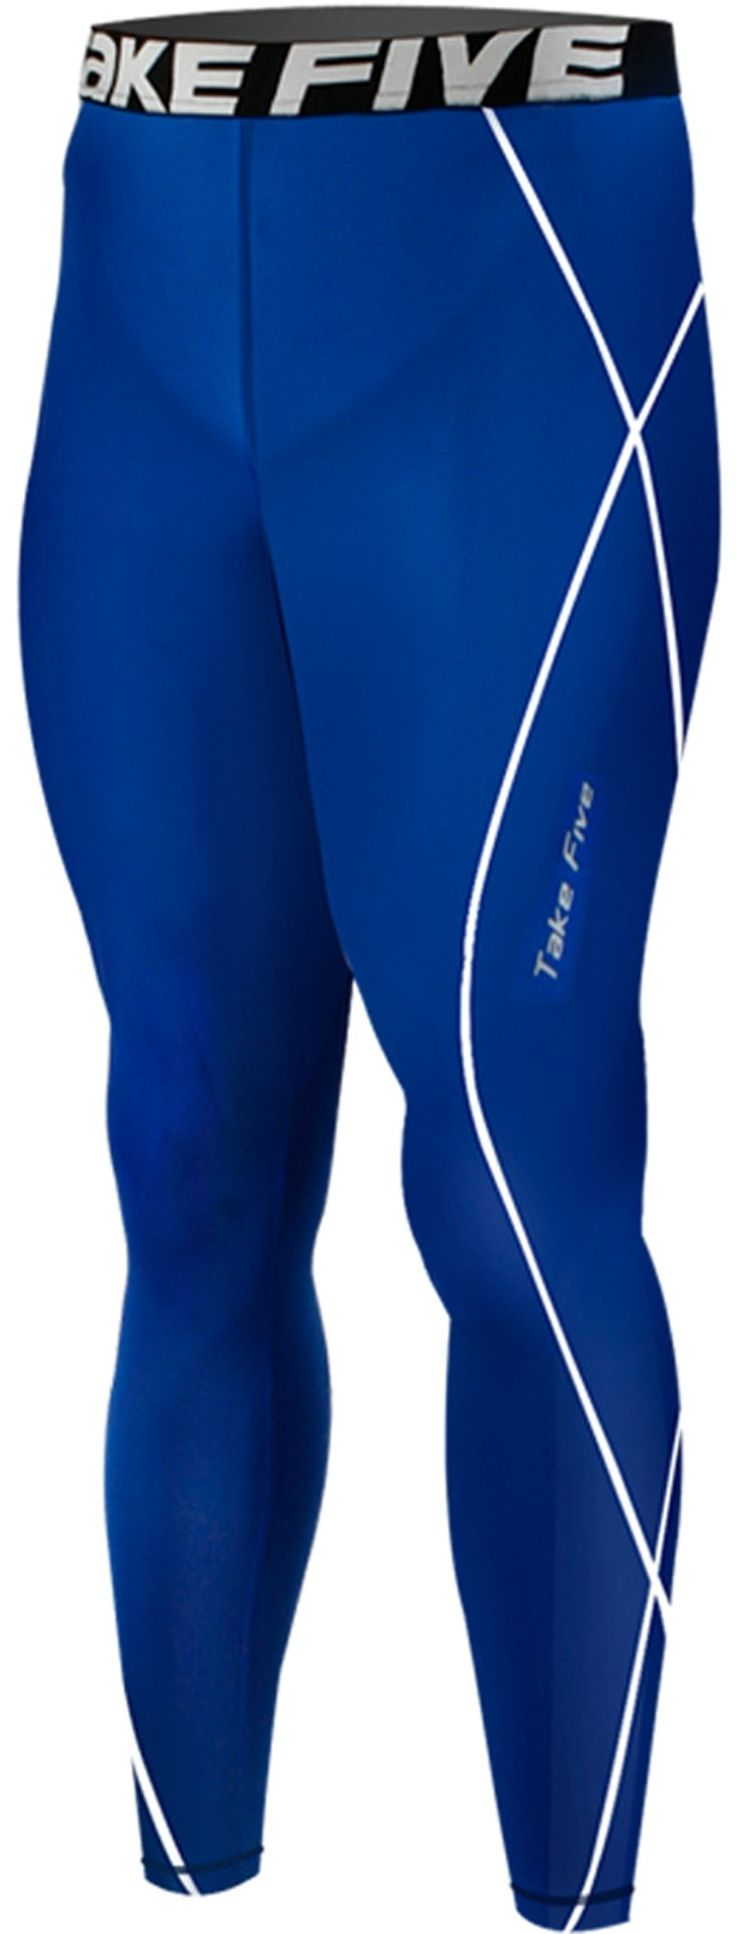 New 054 Skin Tights Compression Leggings Base Layer Blue Running Pants Mens (2XL). Men's long Pants compression Tights made using Take Five technology. Color : Blue. UVA/UVB Protection - Take Five compressoin protects your skin from UVA/UVB radiation during your outdoor workout. Great for skiing, snowboarding, training, competing, and all weather sports and activities. Machine washable.